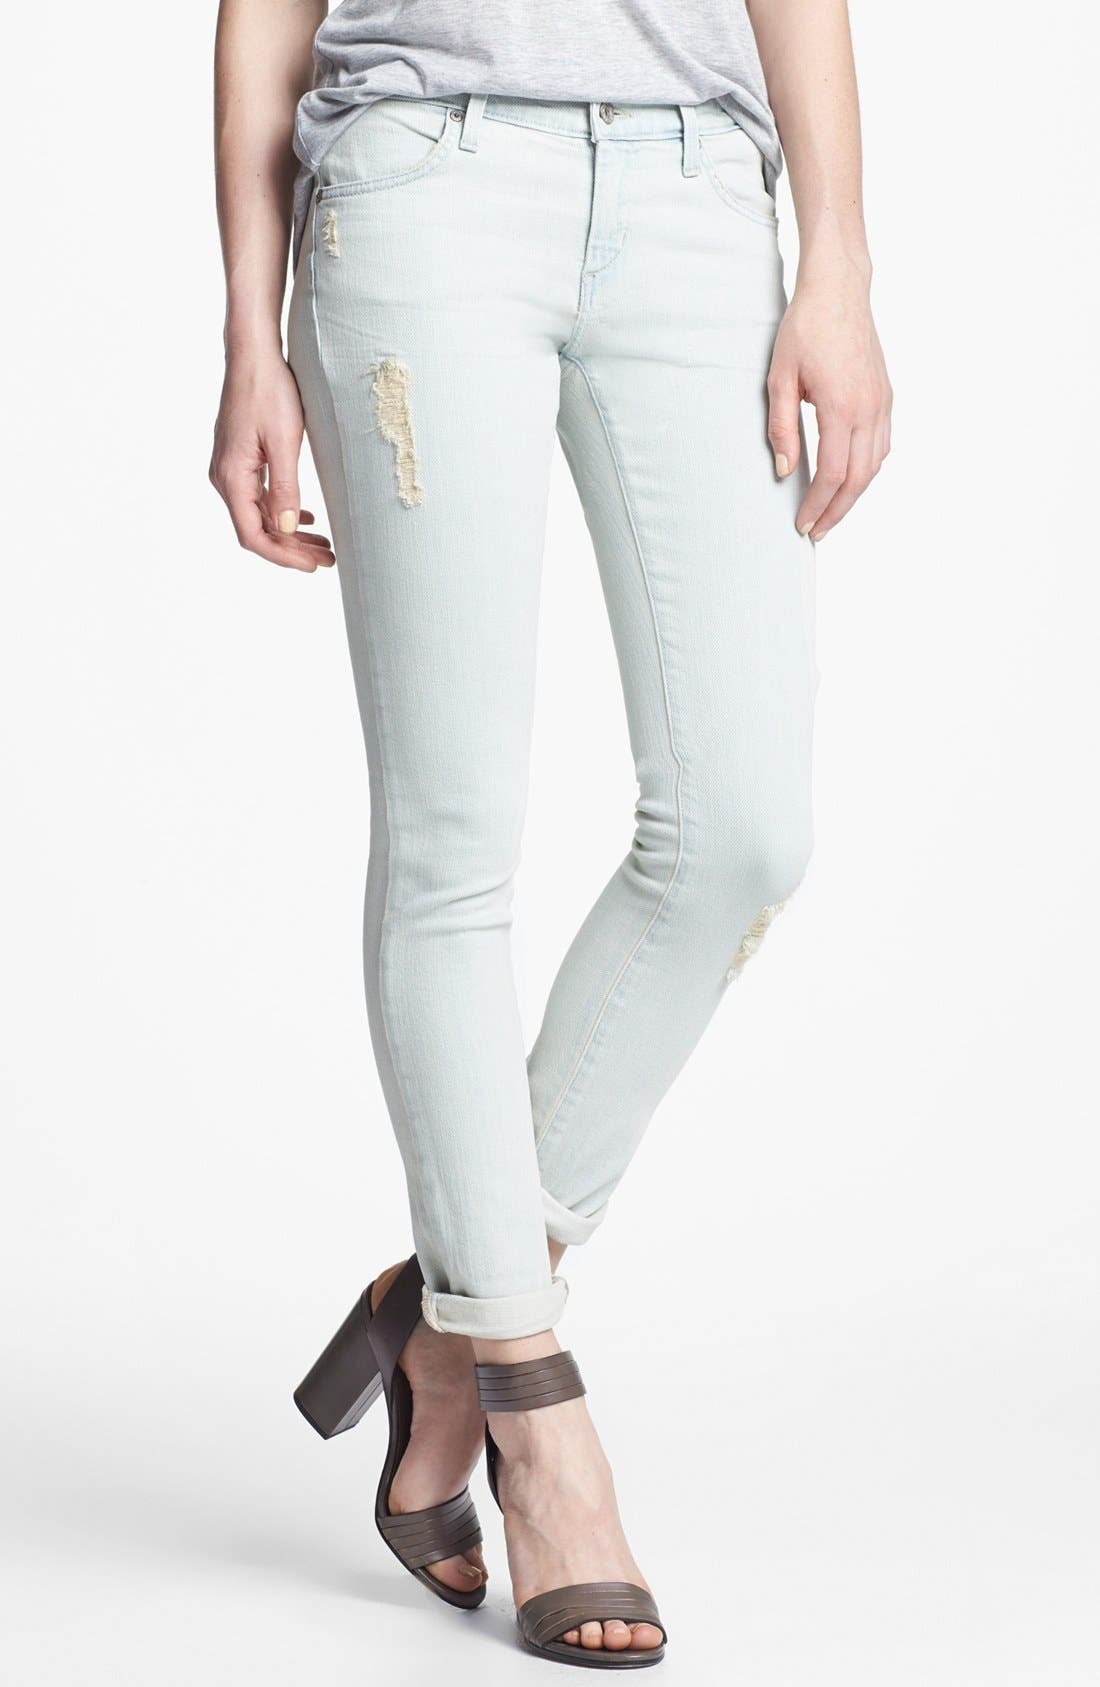 Main Image - James Jeans 'Neo Beau' Distressed Boyfriend Jeans (Petite) (Online Only)